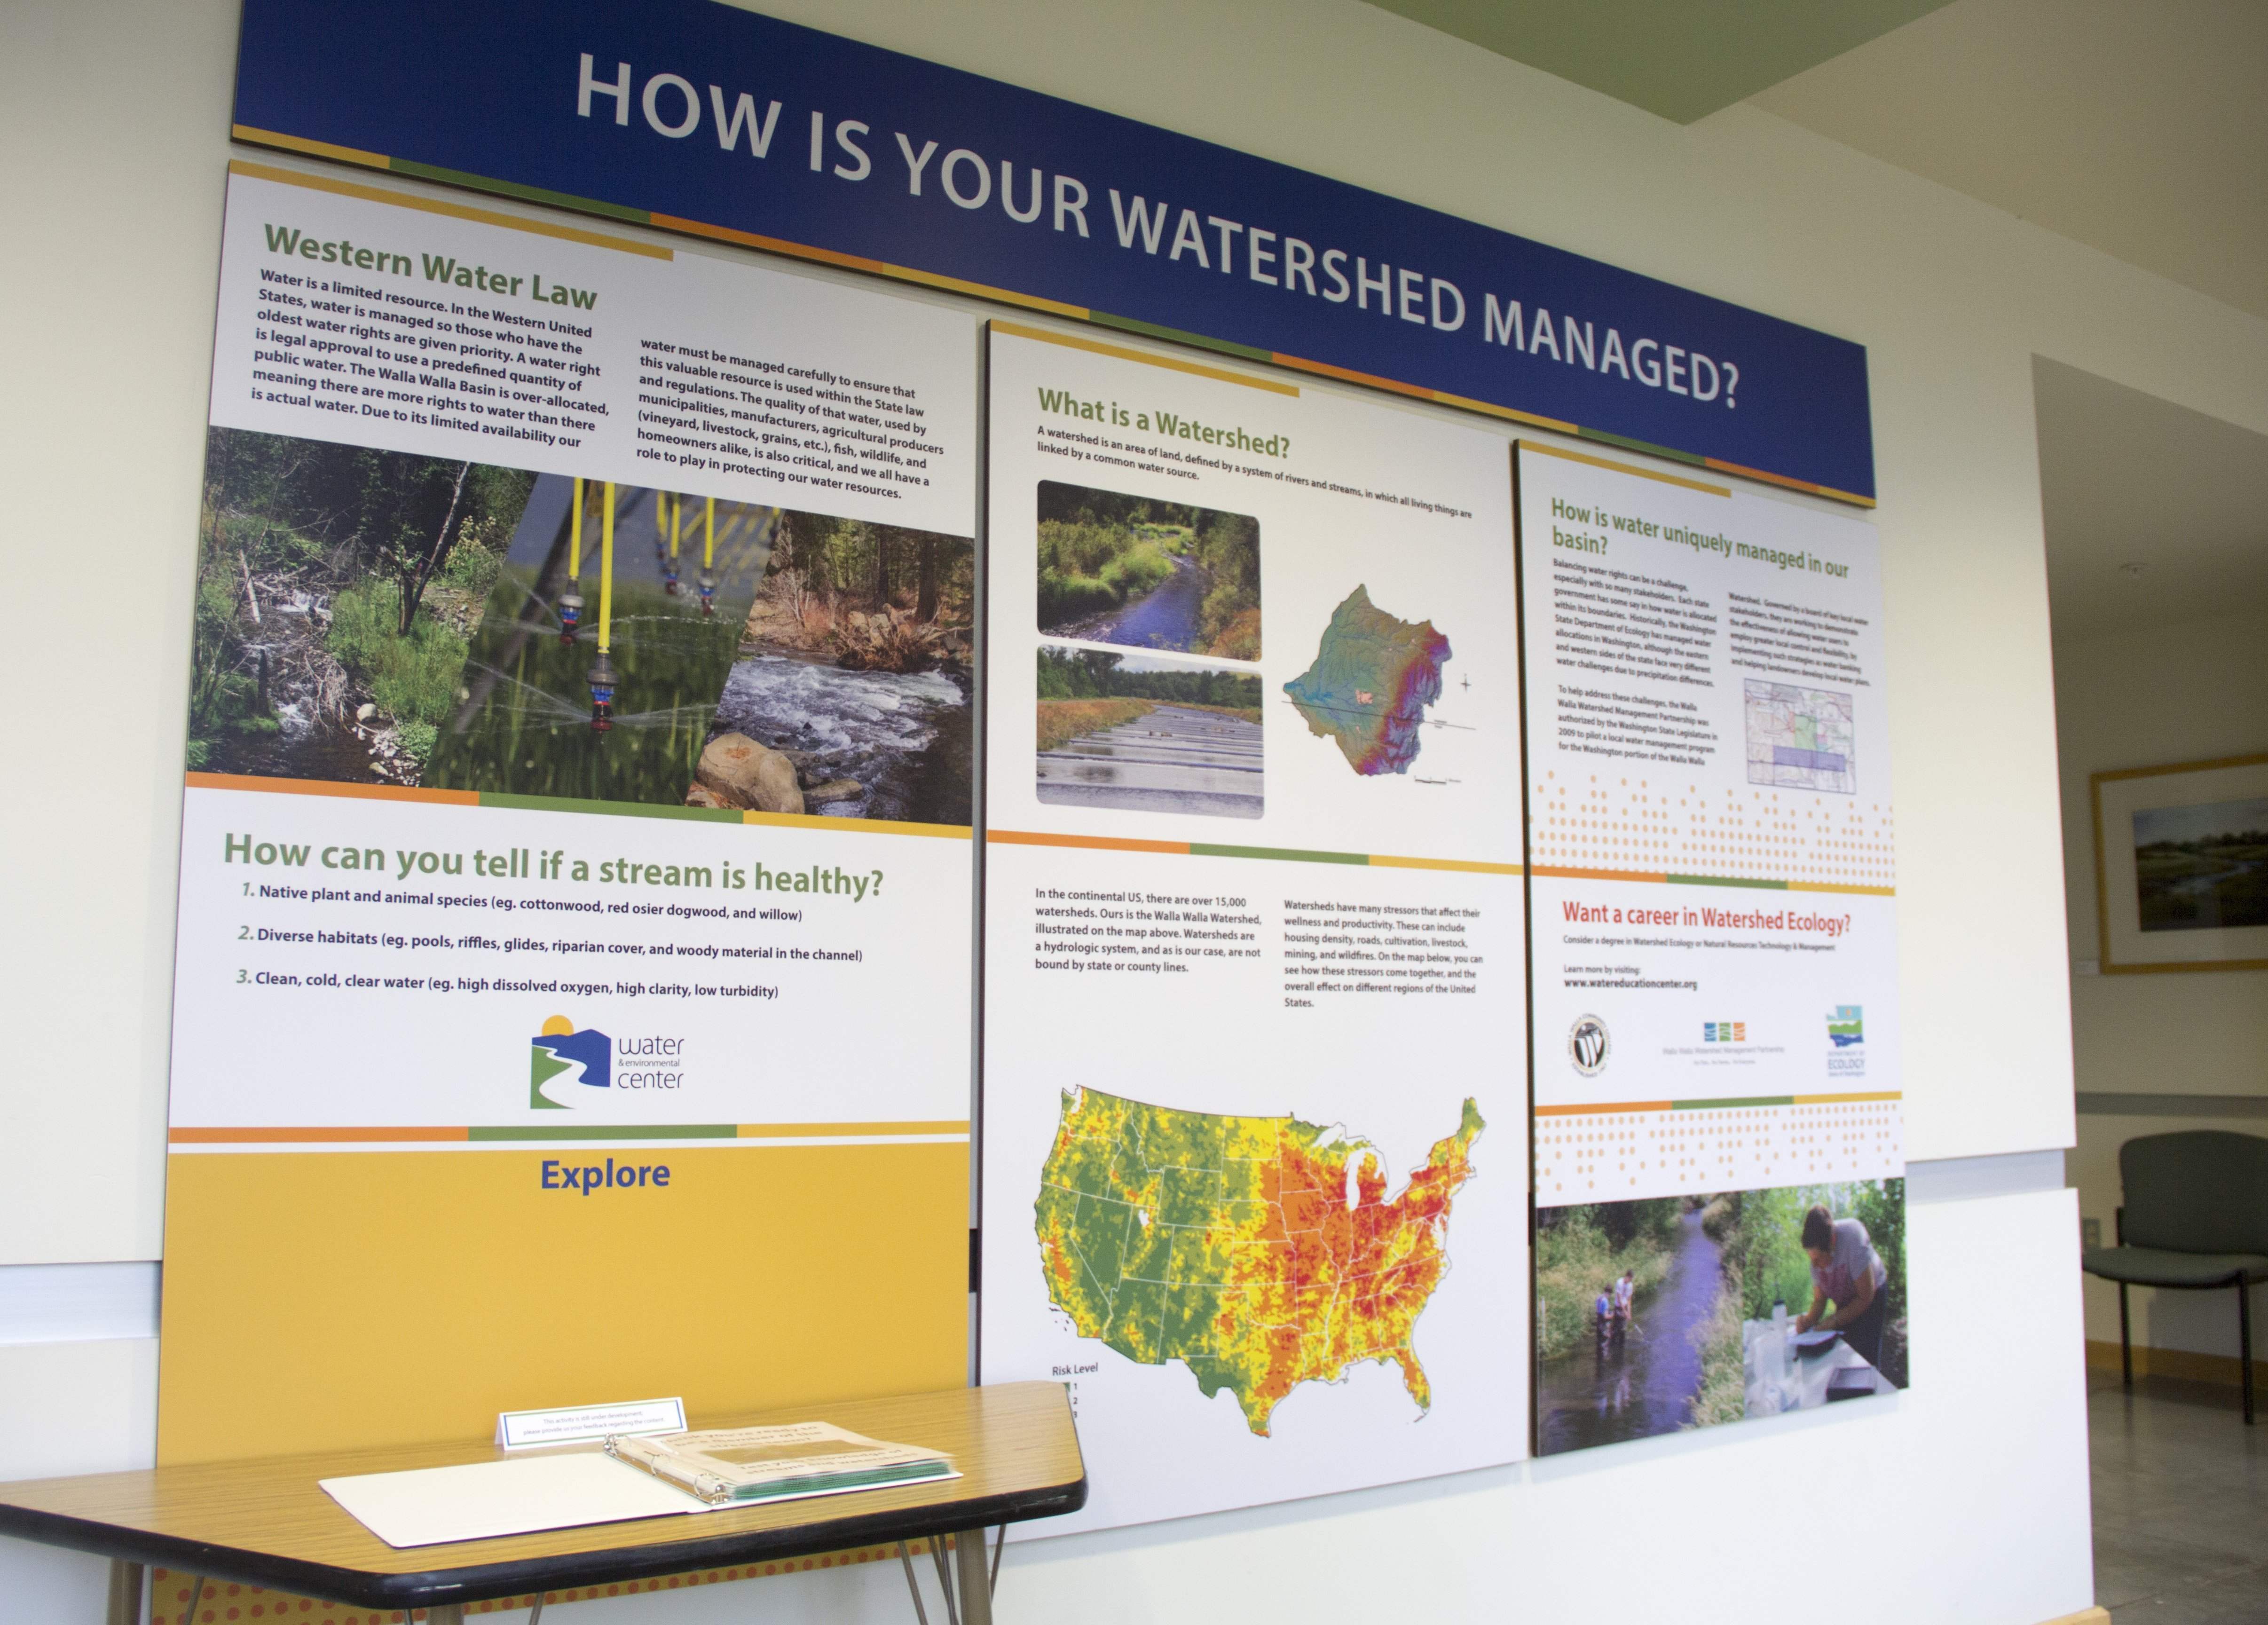 How is your watershed managed? informational station